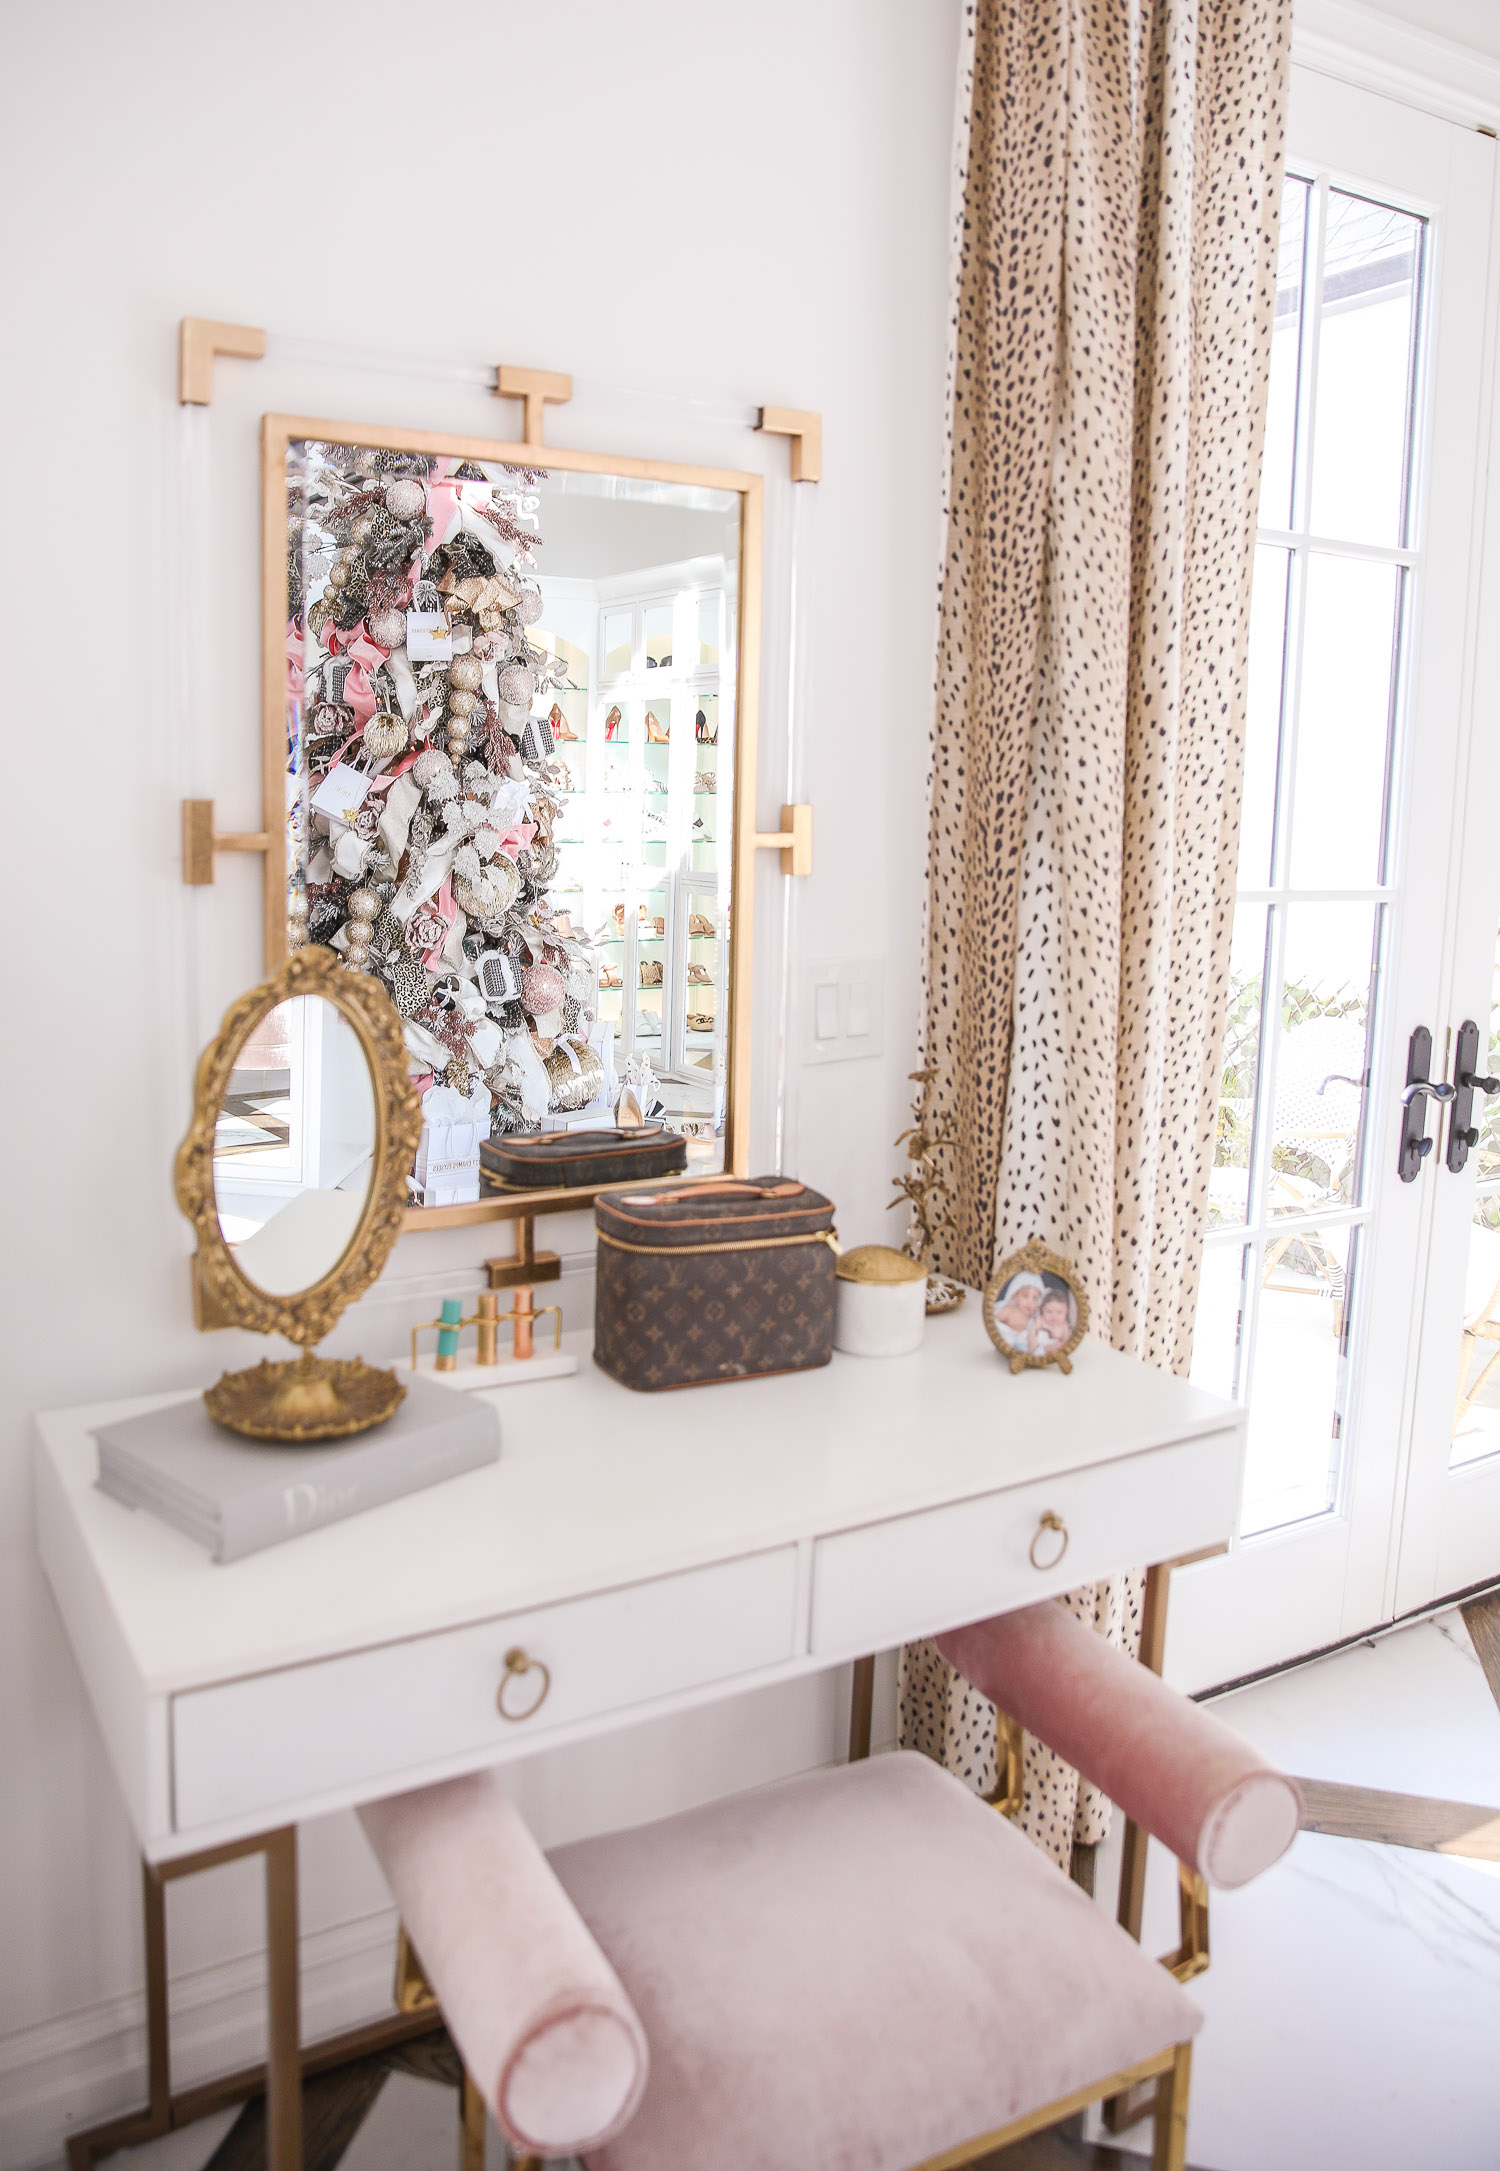 two story closet pinterest, designer chanel christmas tree, unique christmas trees, shop hello holidays, emily gemma christmas tree |Pink and Gold Christmas Tree by popular US life and style blog, The Sweetest Thing: image of a two story closet with floor length antelope print drapes and a white vanity with a pink velvet seat.